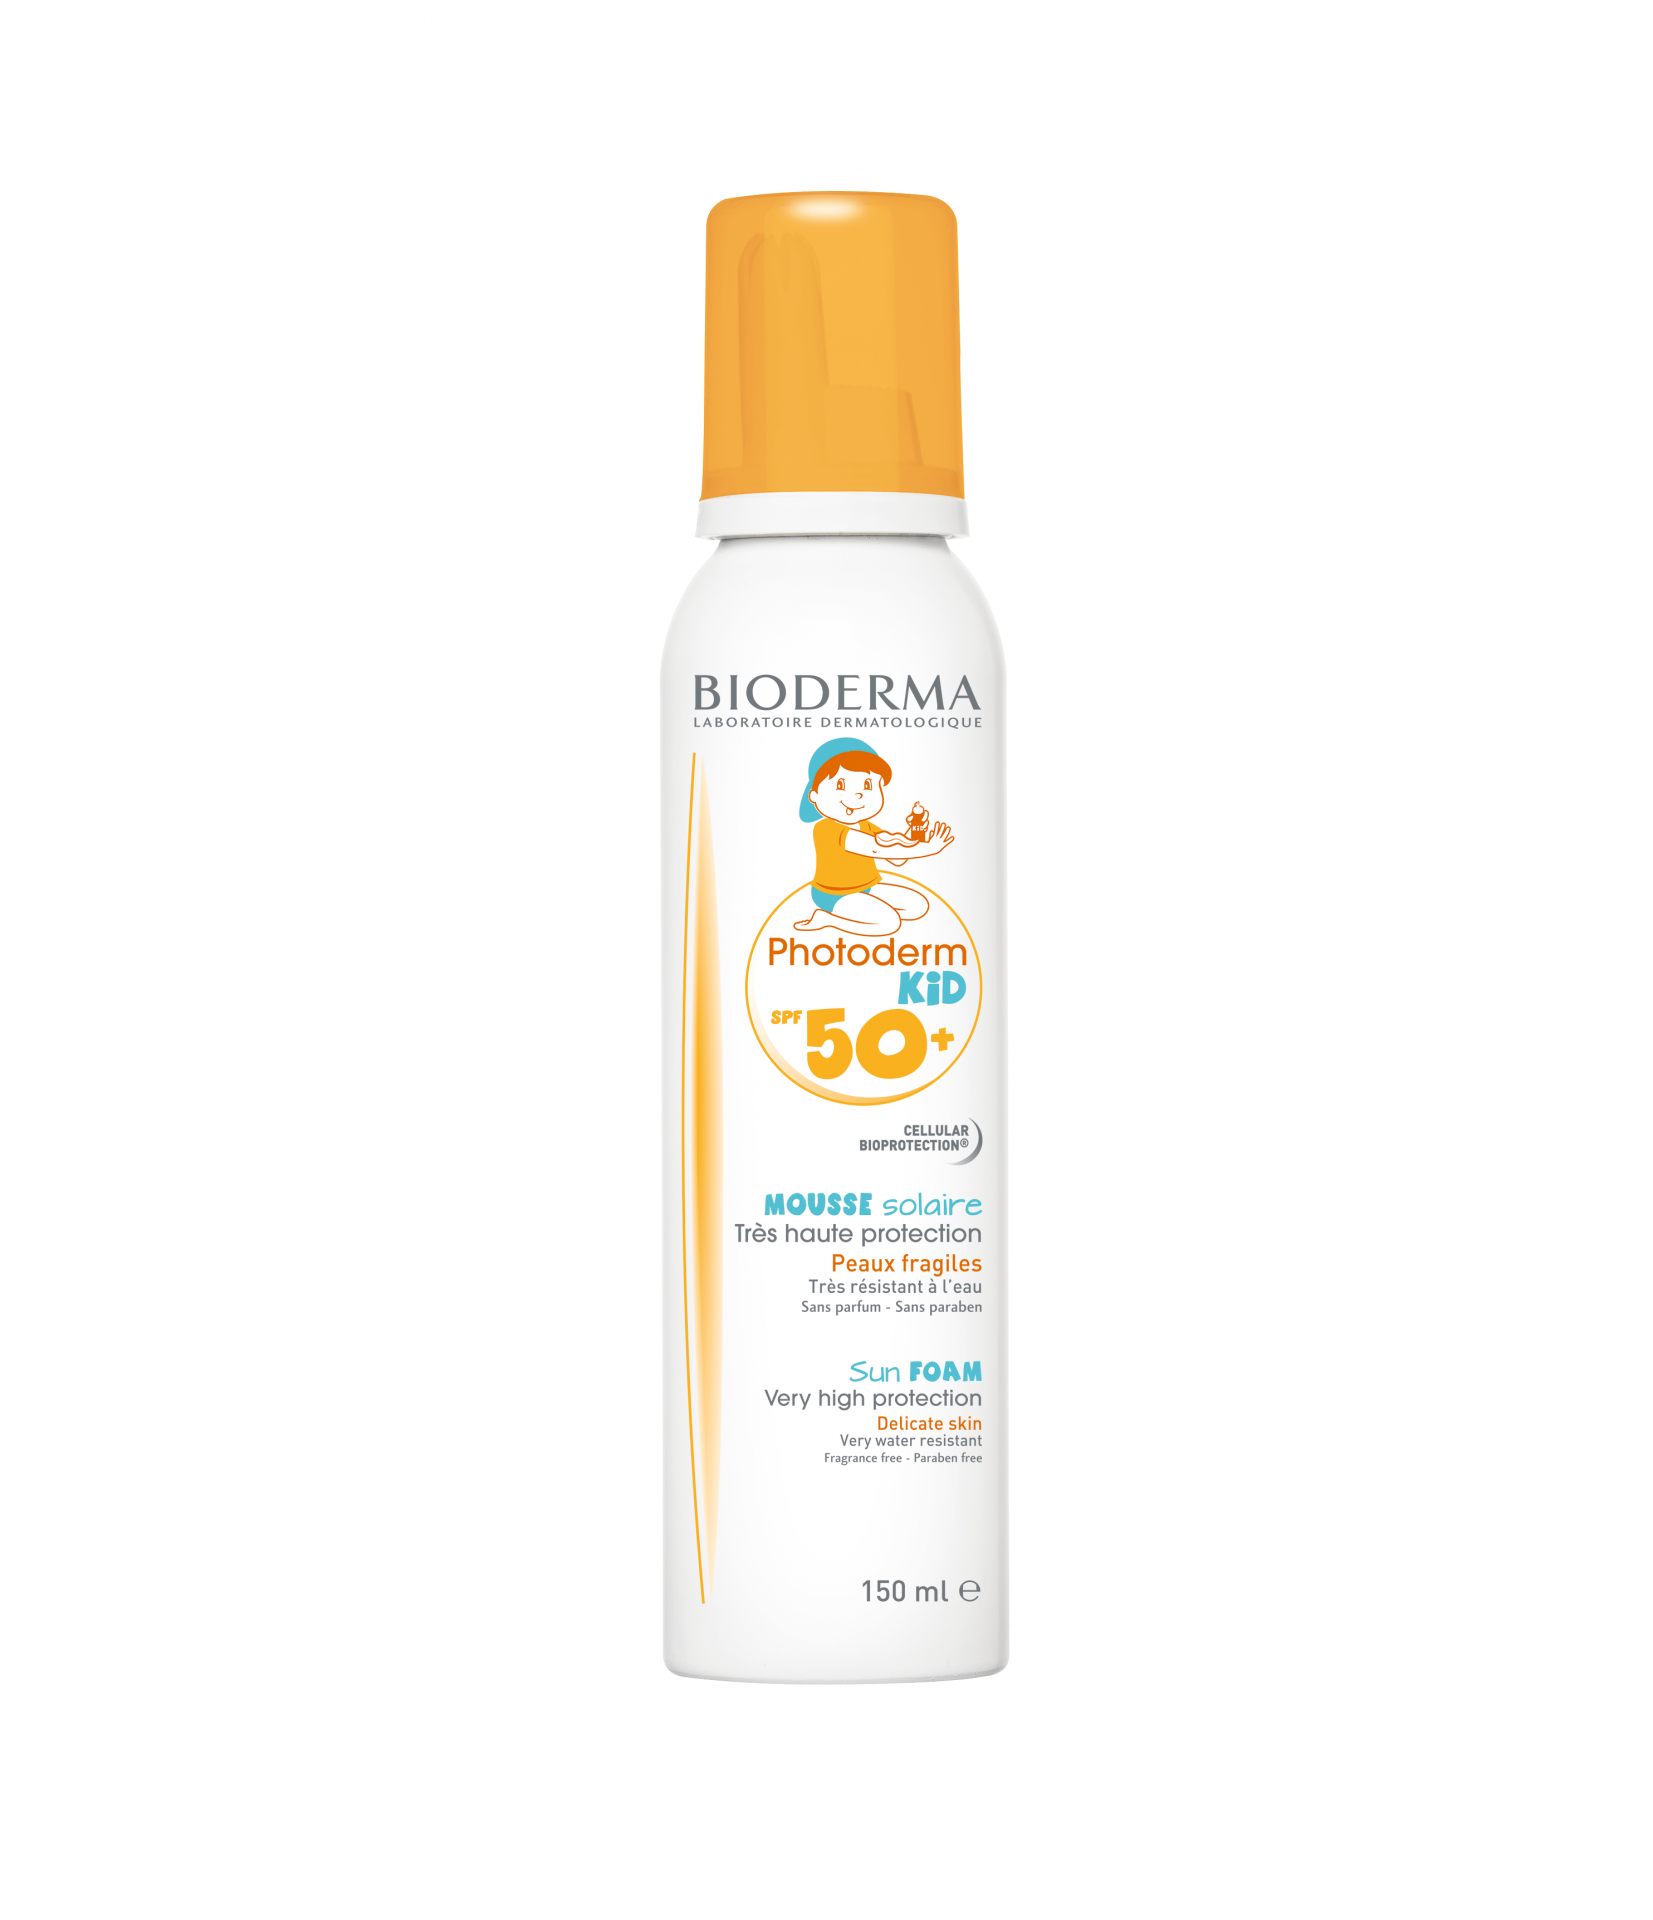 BIODERMA PHOTODERM KID SPF50+ MOUSE 150ml